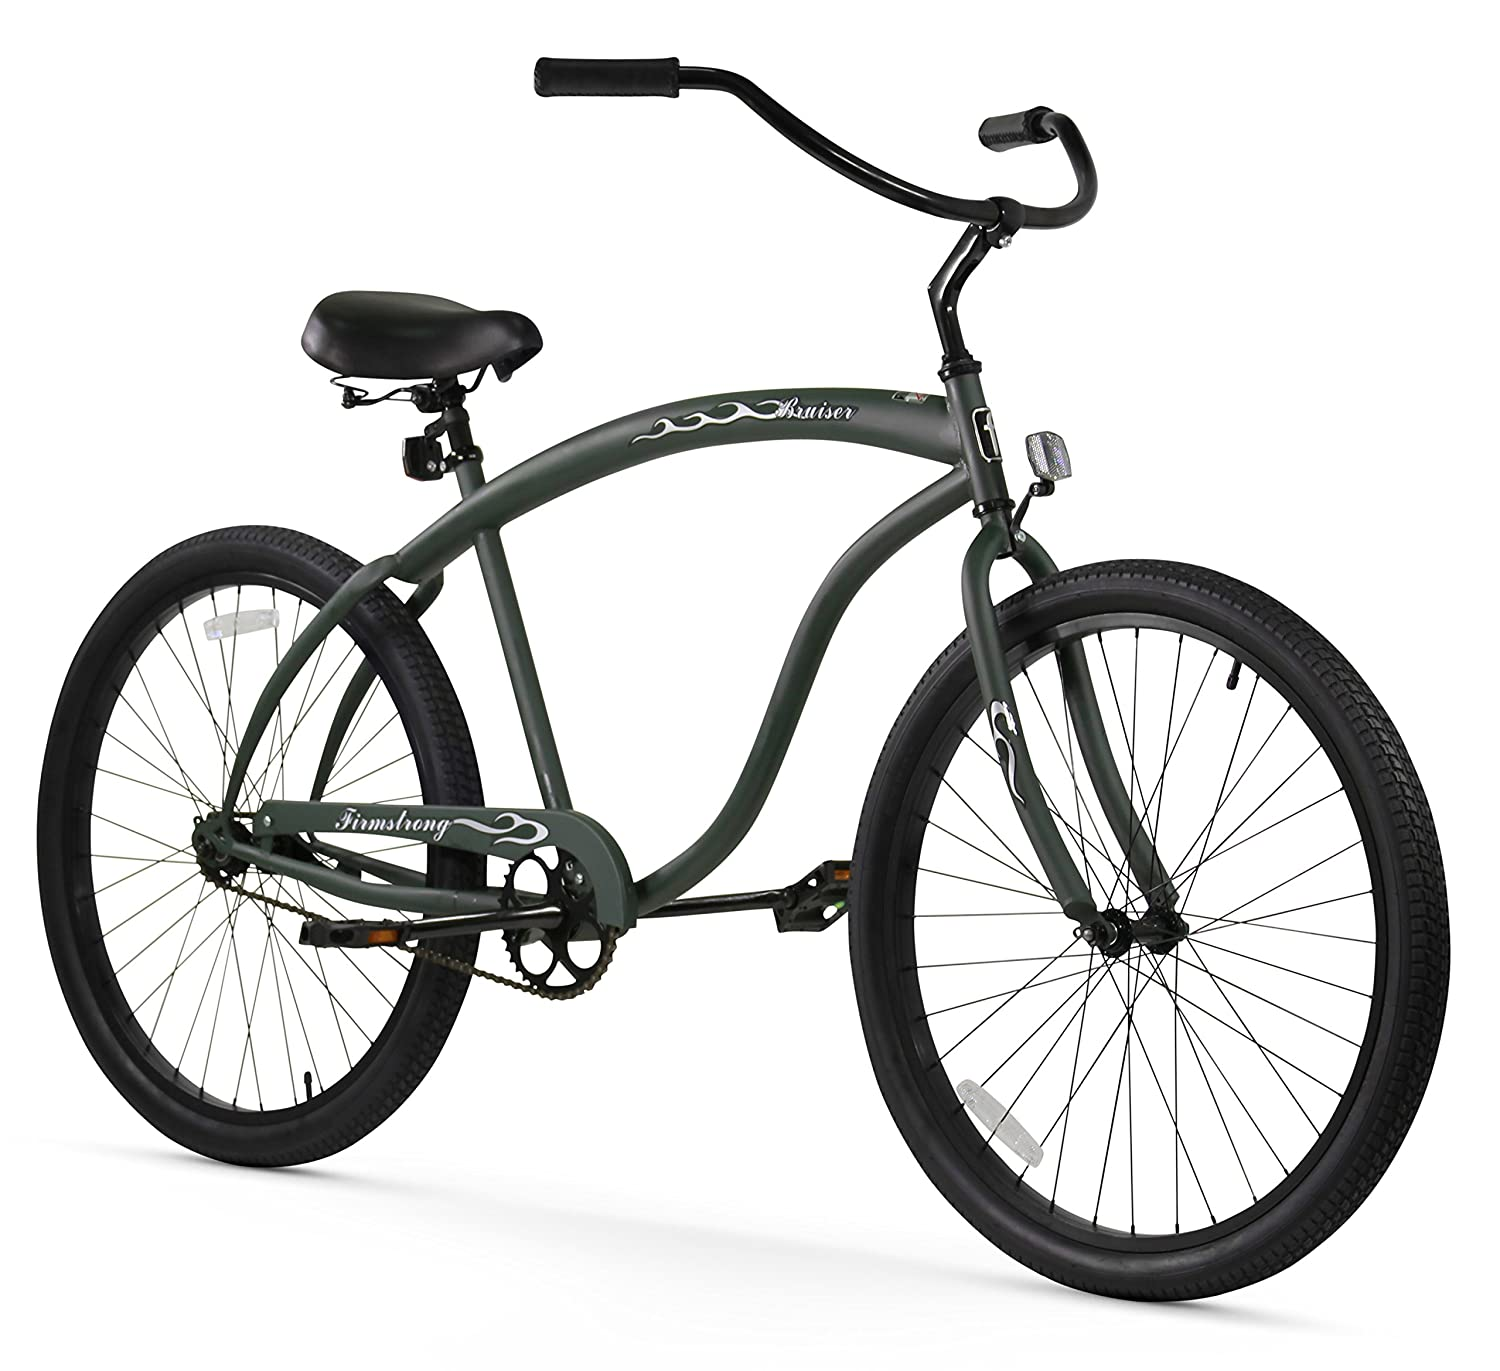 The Firmstrong Bruiser Man Beach Cruiser Bike